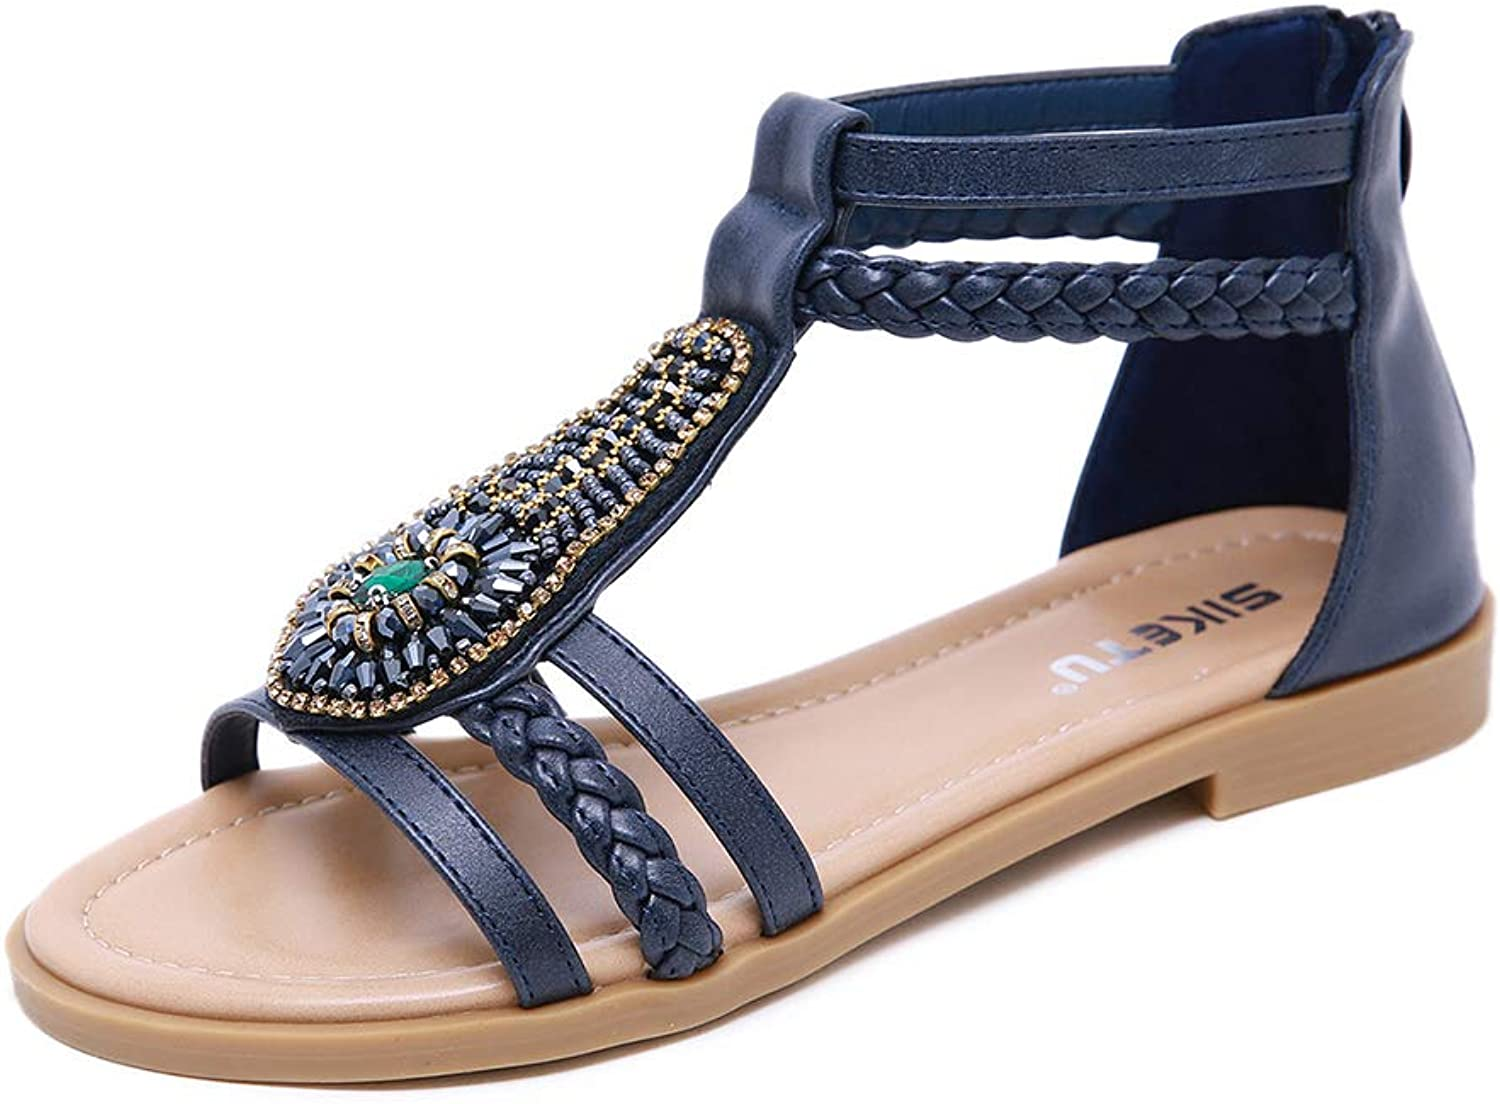 Flat Sandals for Women,Bohemian Rhinestone Wedges with Comfortable Roman shoes,Navy,US7B(M)